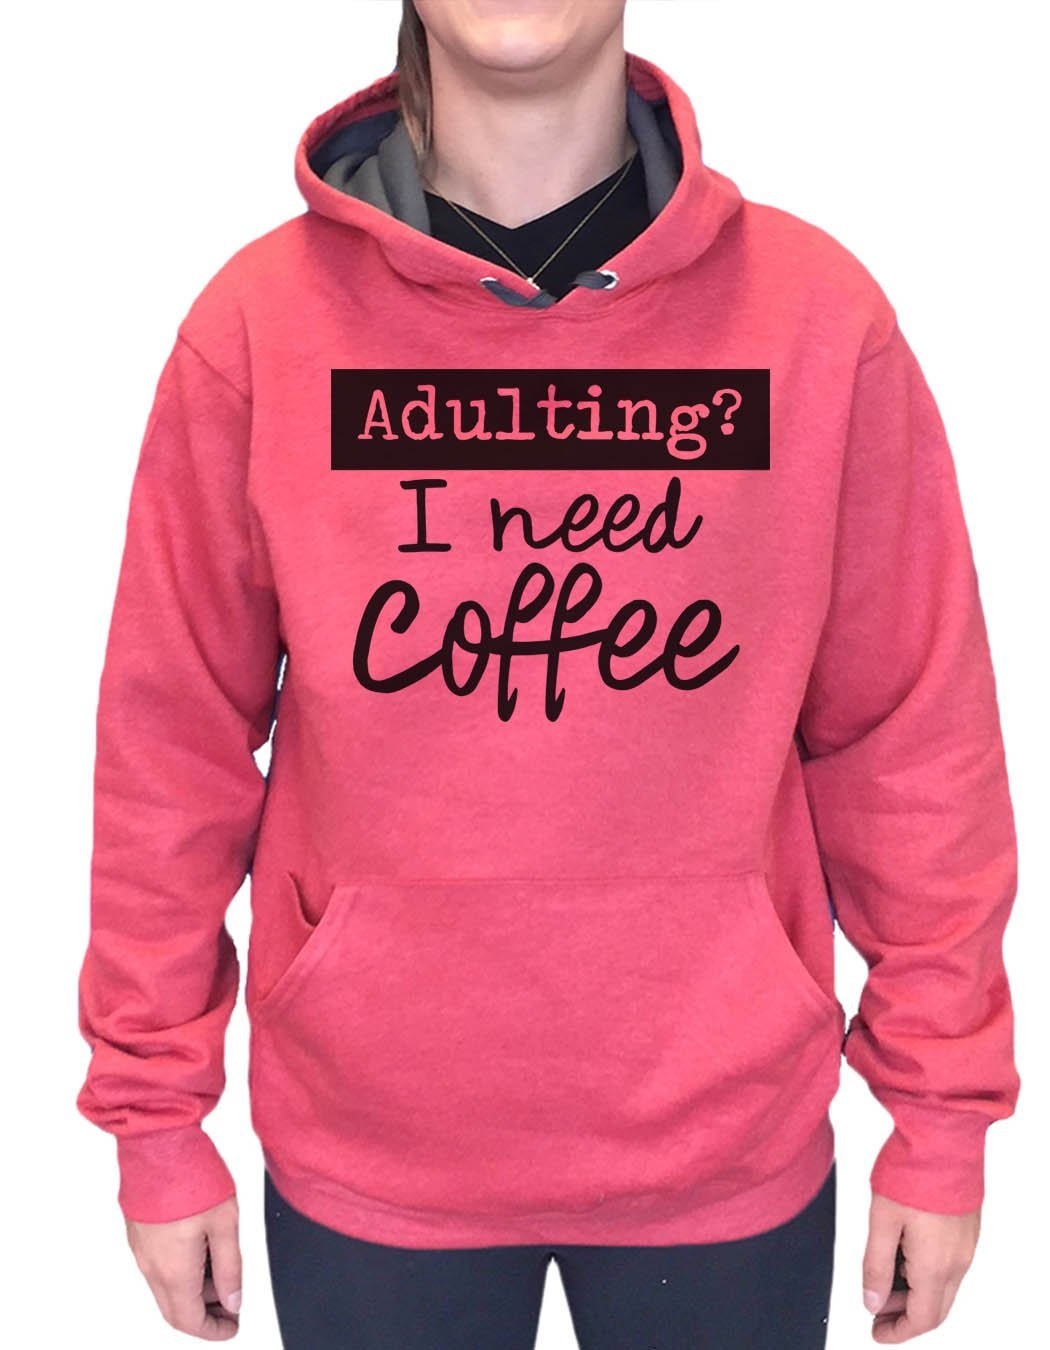 UNISEX HOODIE - Adulting? I Need Coffee - FUNNY MENS AND WOMENS HOODED SWEATSHIRTS - 2207 Funny Shirt Small / Cranberry Red